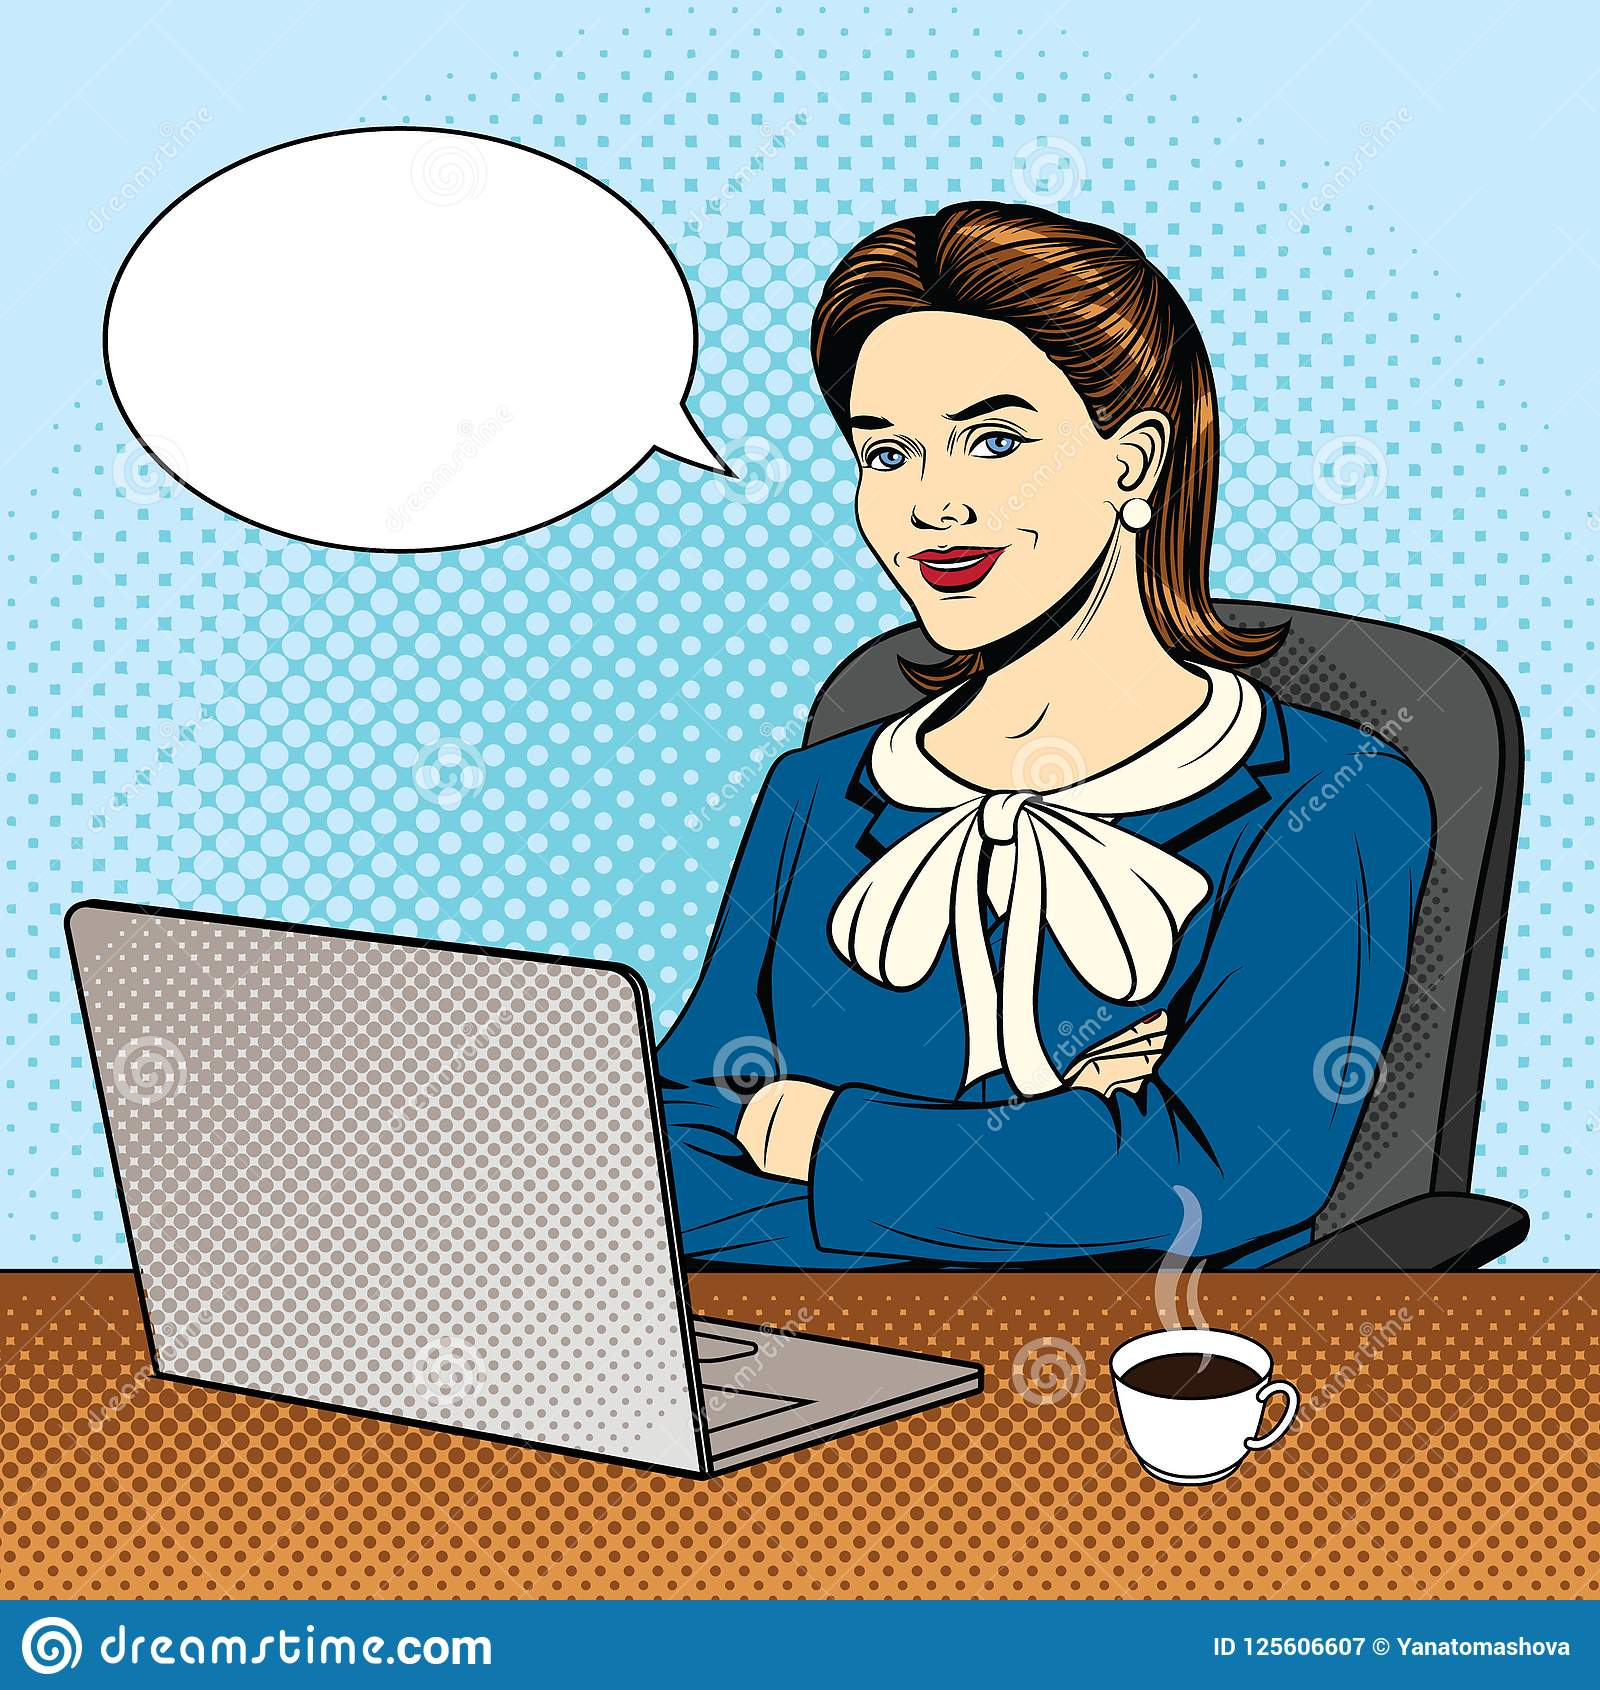 Vector color pop art comic style illustration of a business woman sitting at the computer.